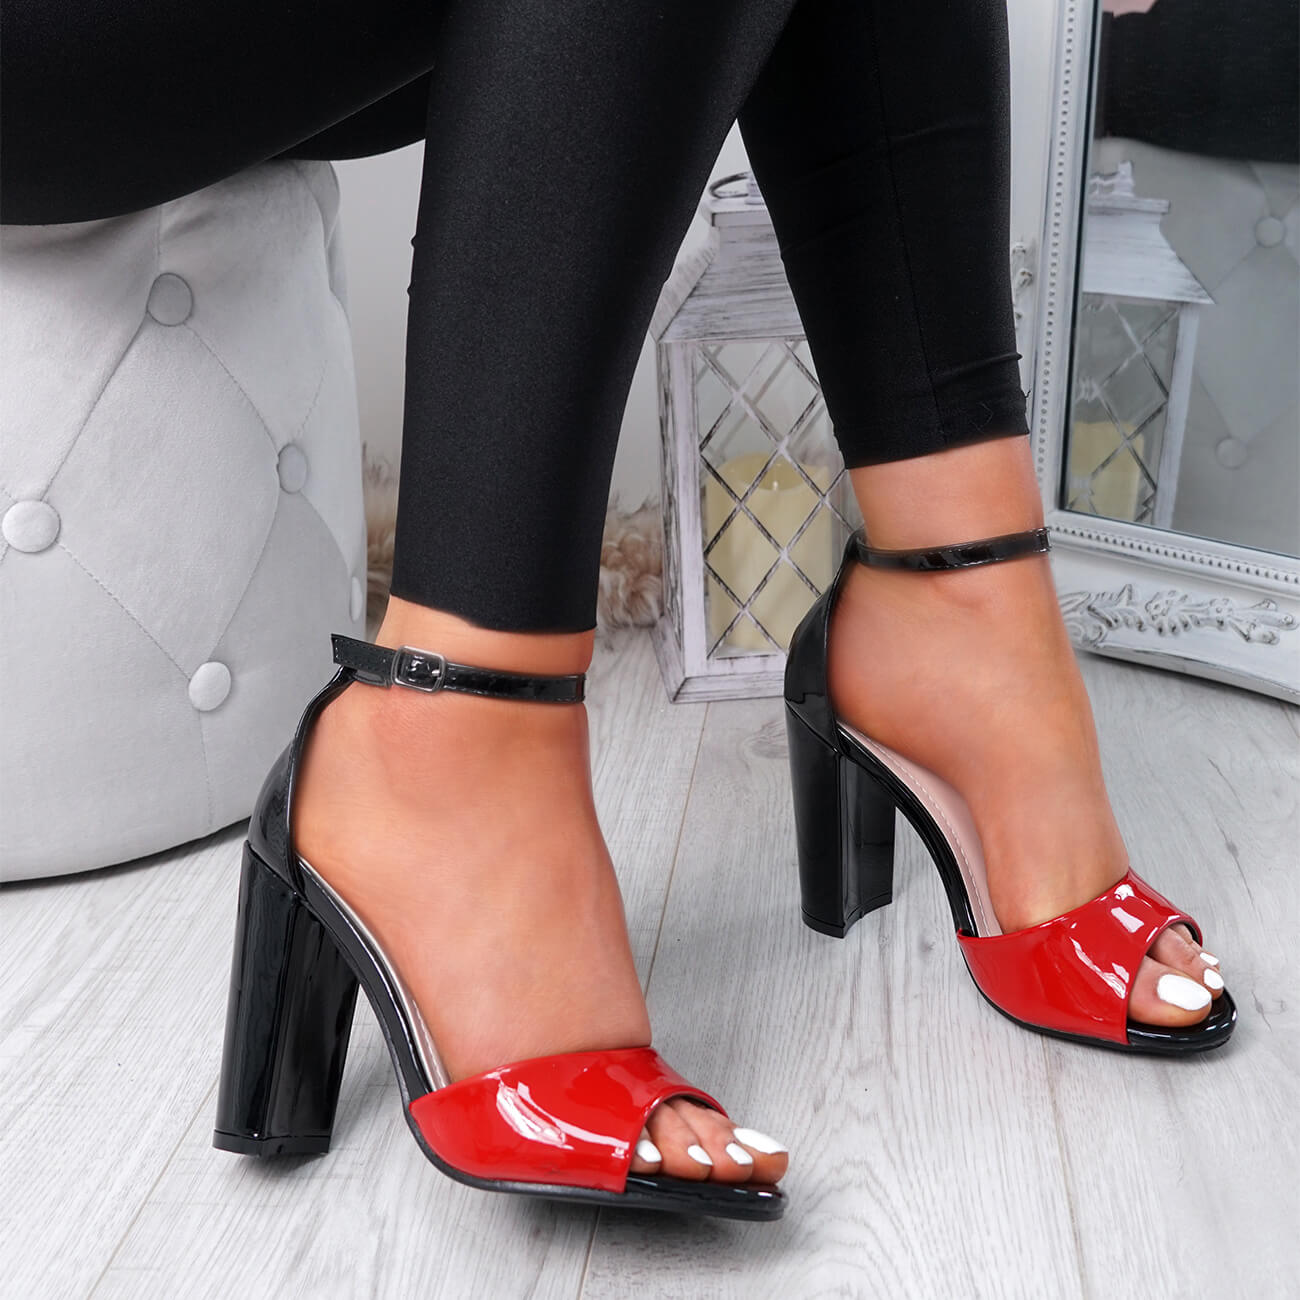 WOMENS-LADIES-ANKLE-STRAP-HIGH-BLOCK-HEEL-SANDALS-PEEP-TOE-OFFICE-CASUAL-SHOES thumbnail 24